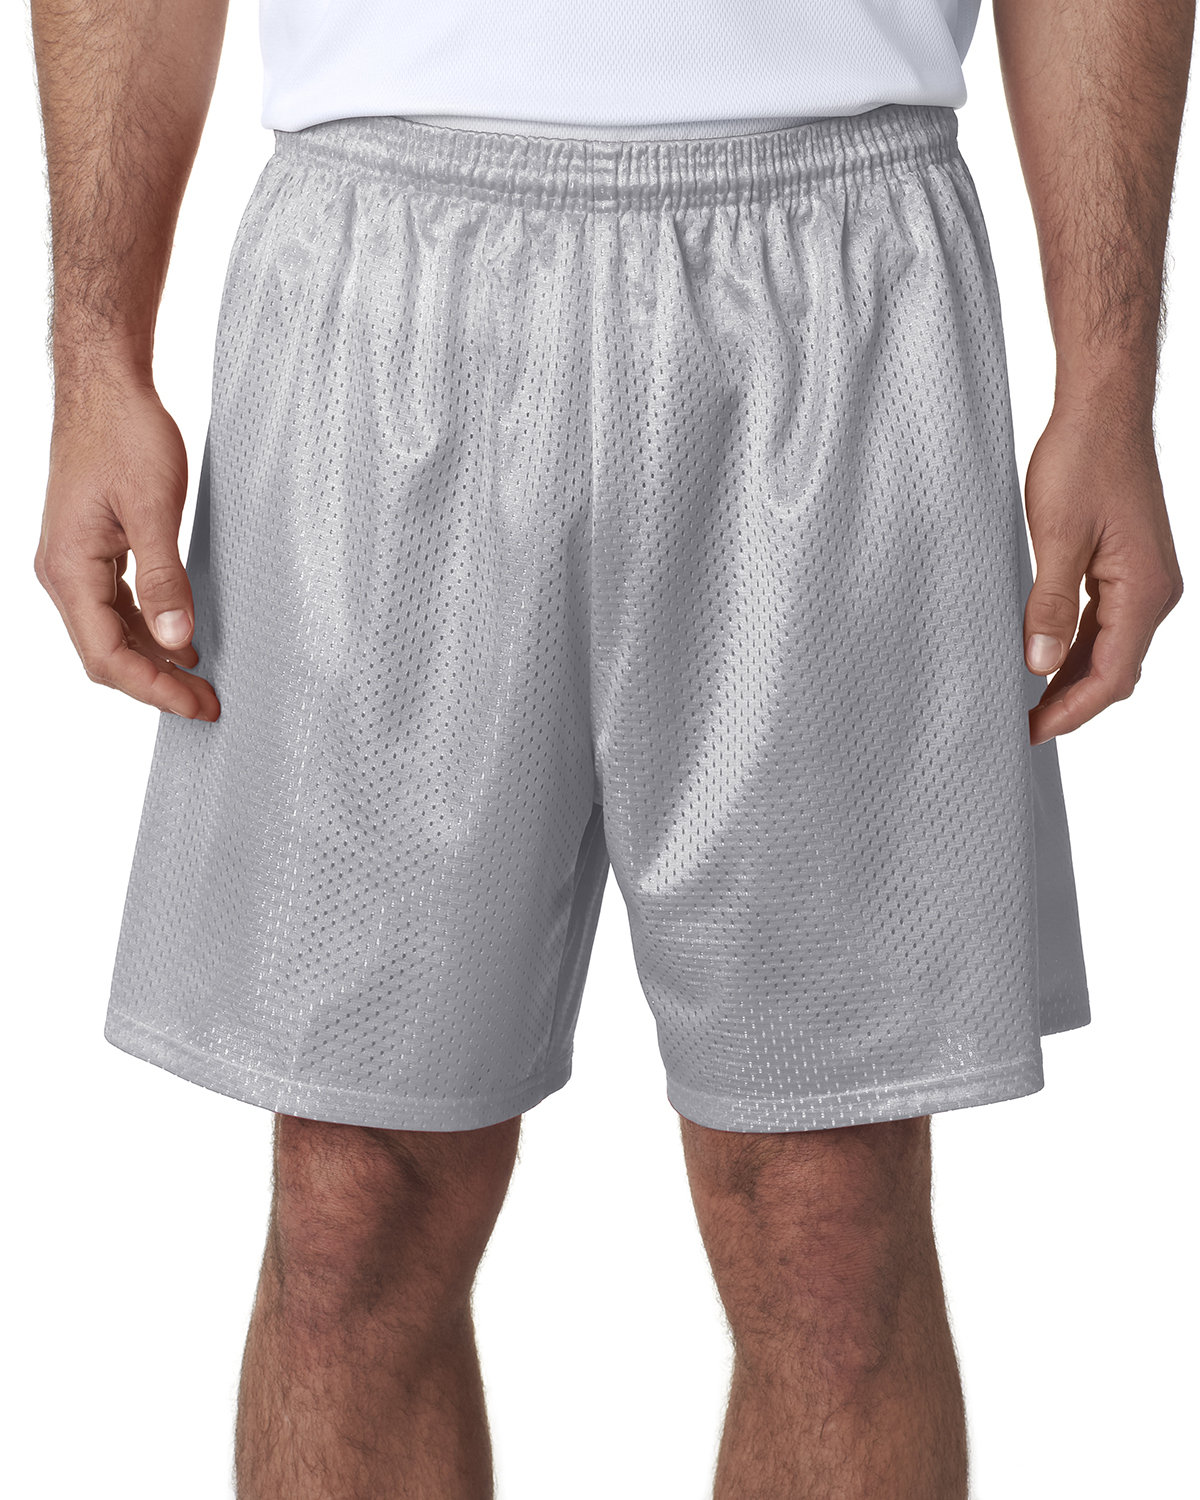 A4 Adult Seven Inch Inseam Mesh Short SILVER